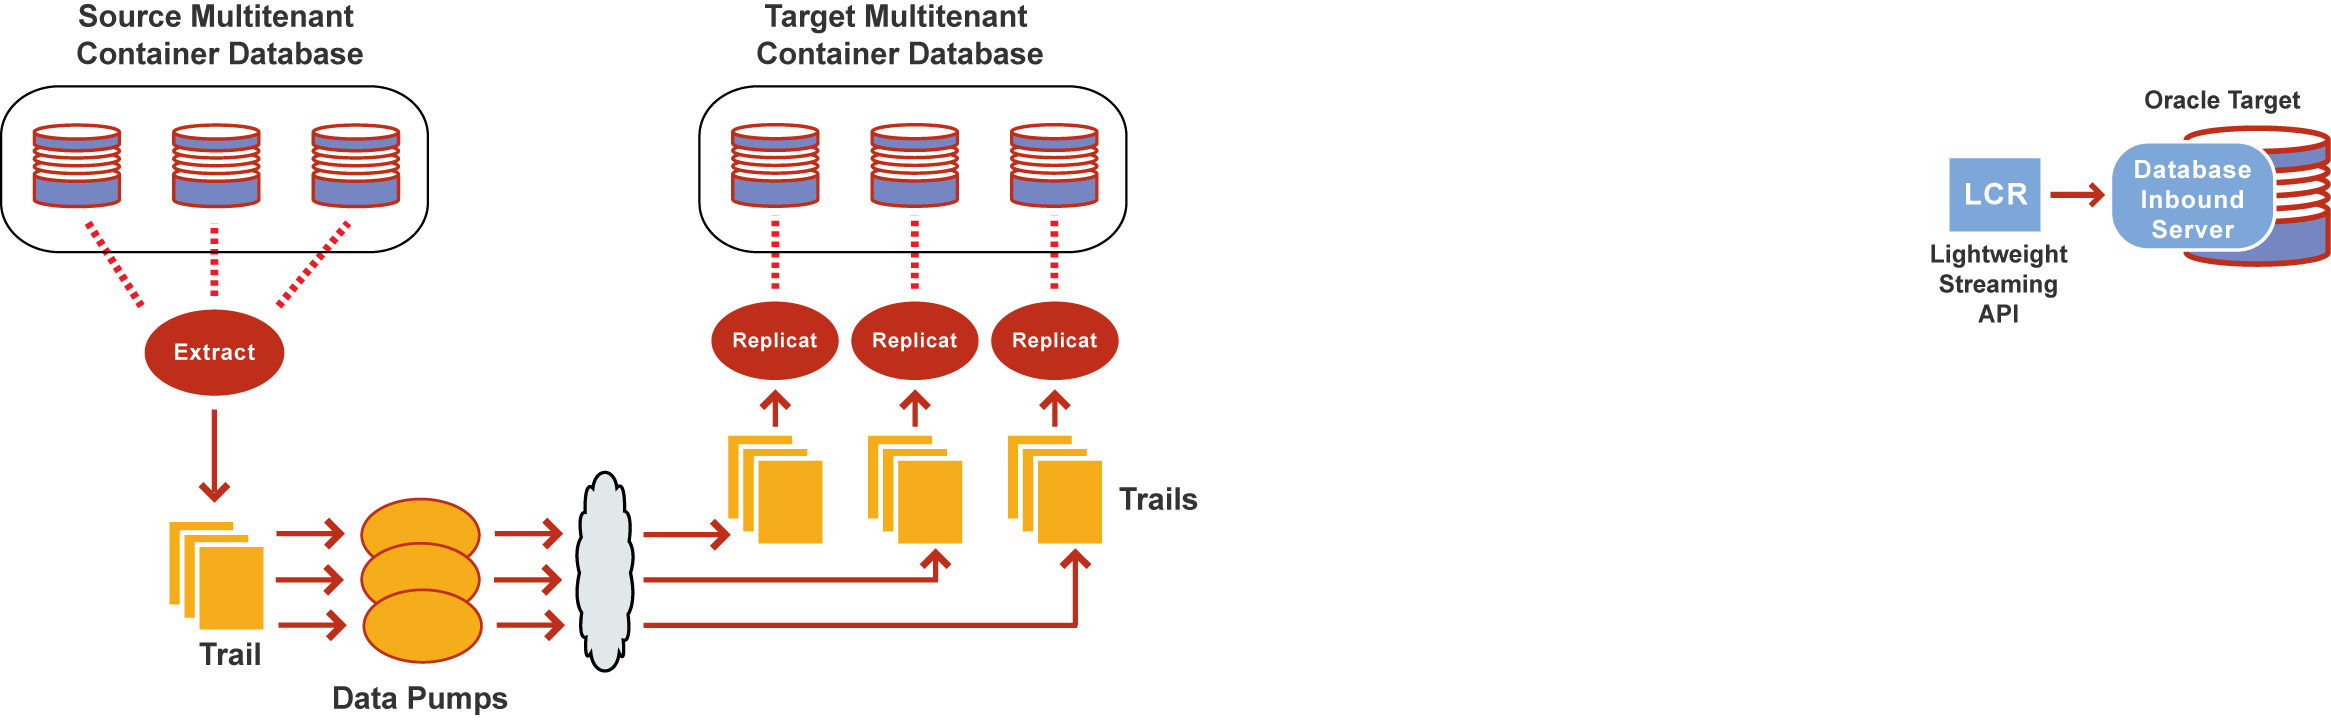 6 Configuring Oracle GoldenGate in a Multitenant Container